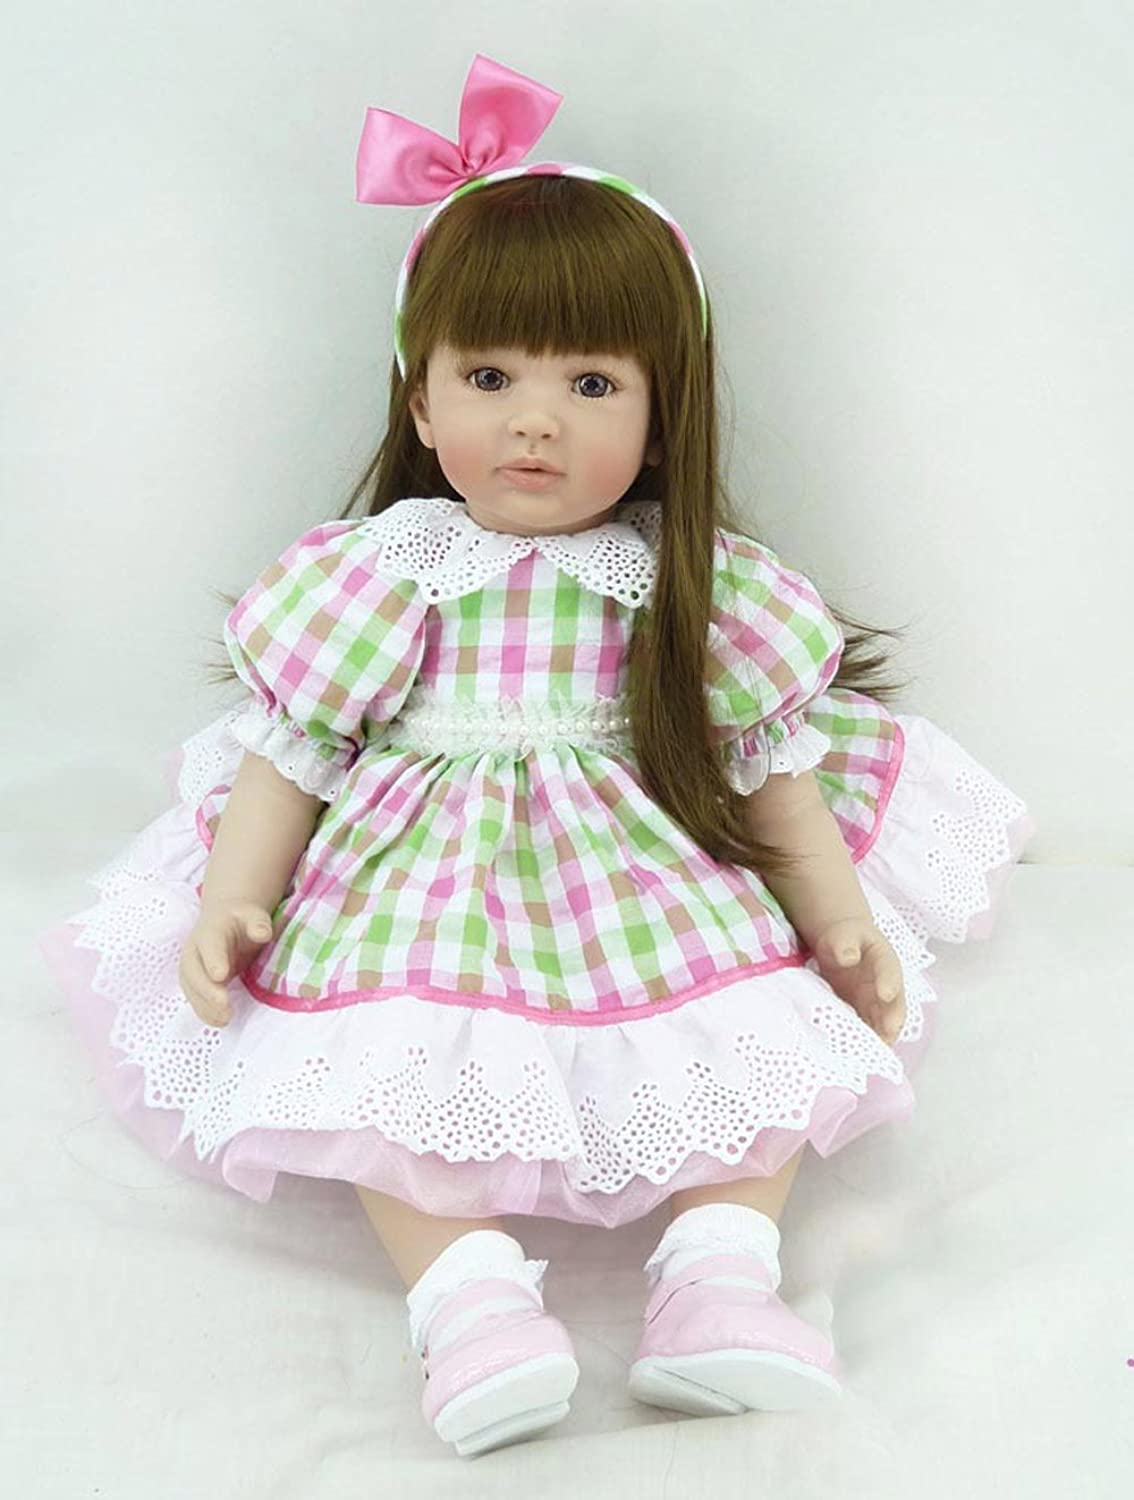 Pursue Baby Soft Body Lifelike Baby Princess Doll Elena, 24 Inch 3 4 Vinyl Realistic Weighted Toddler Doll with Long Hair